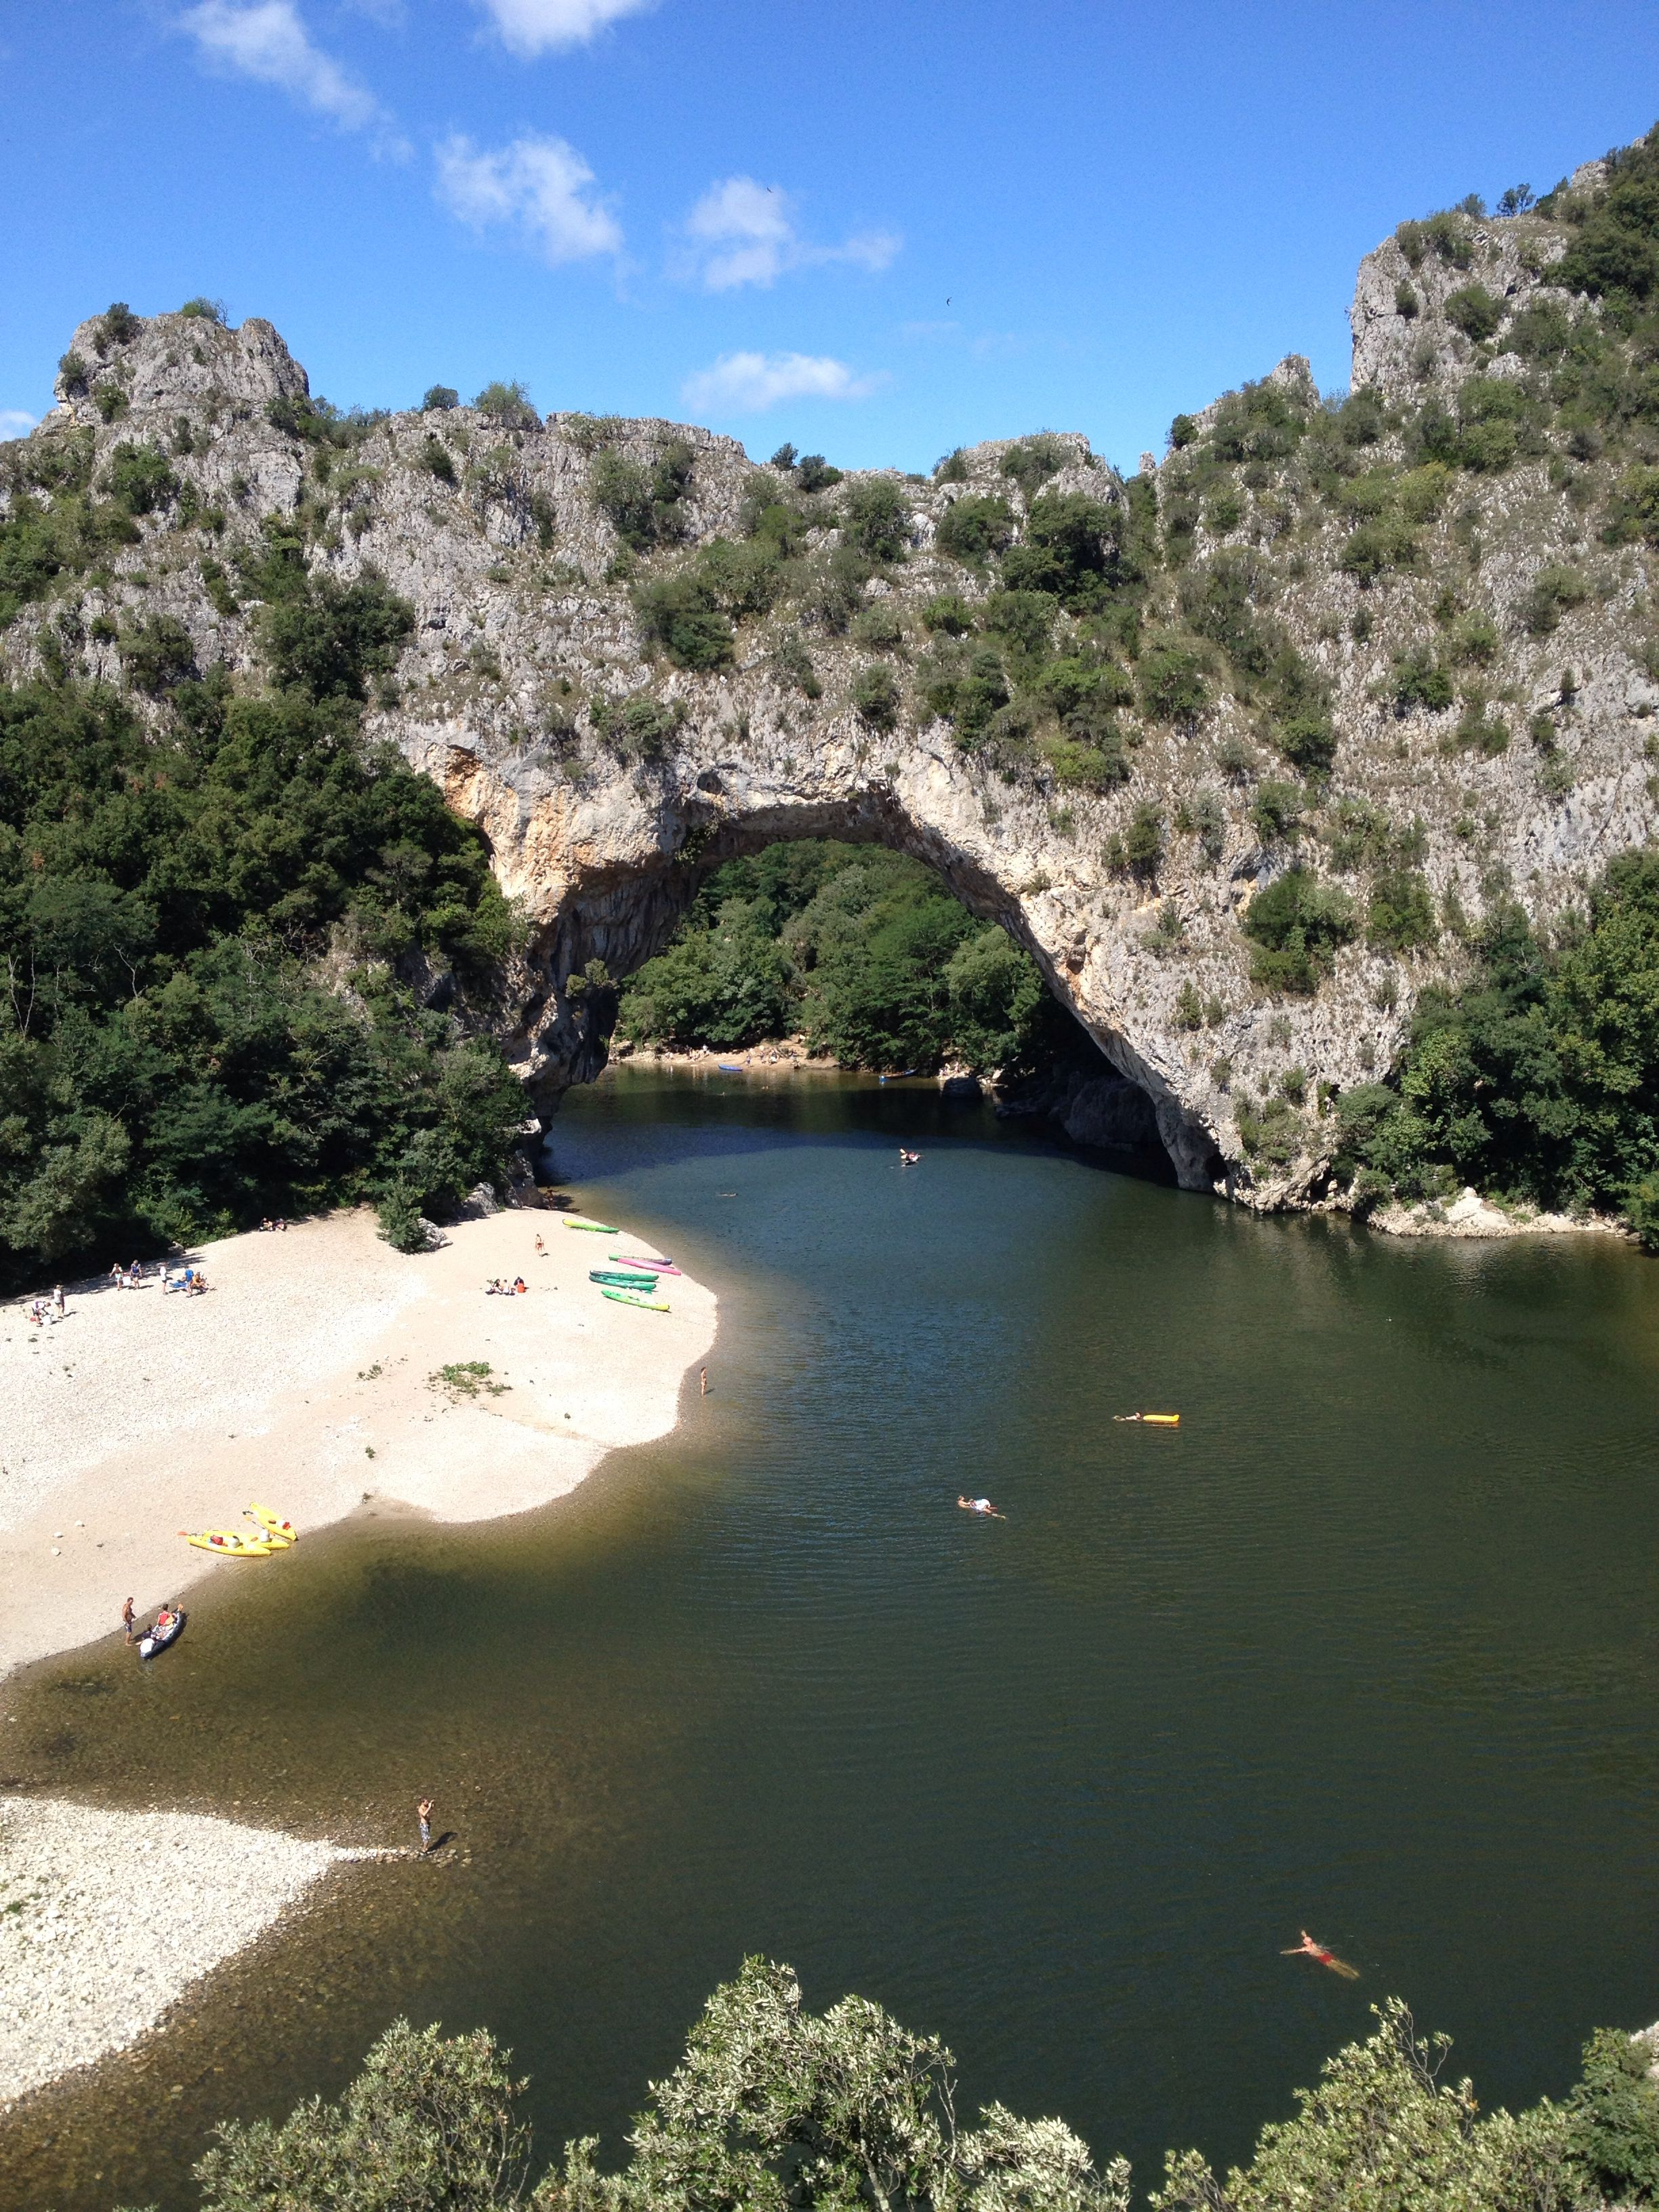 Vallon pont d'Arc, Ardèche, France.